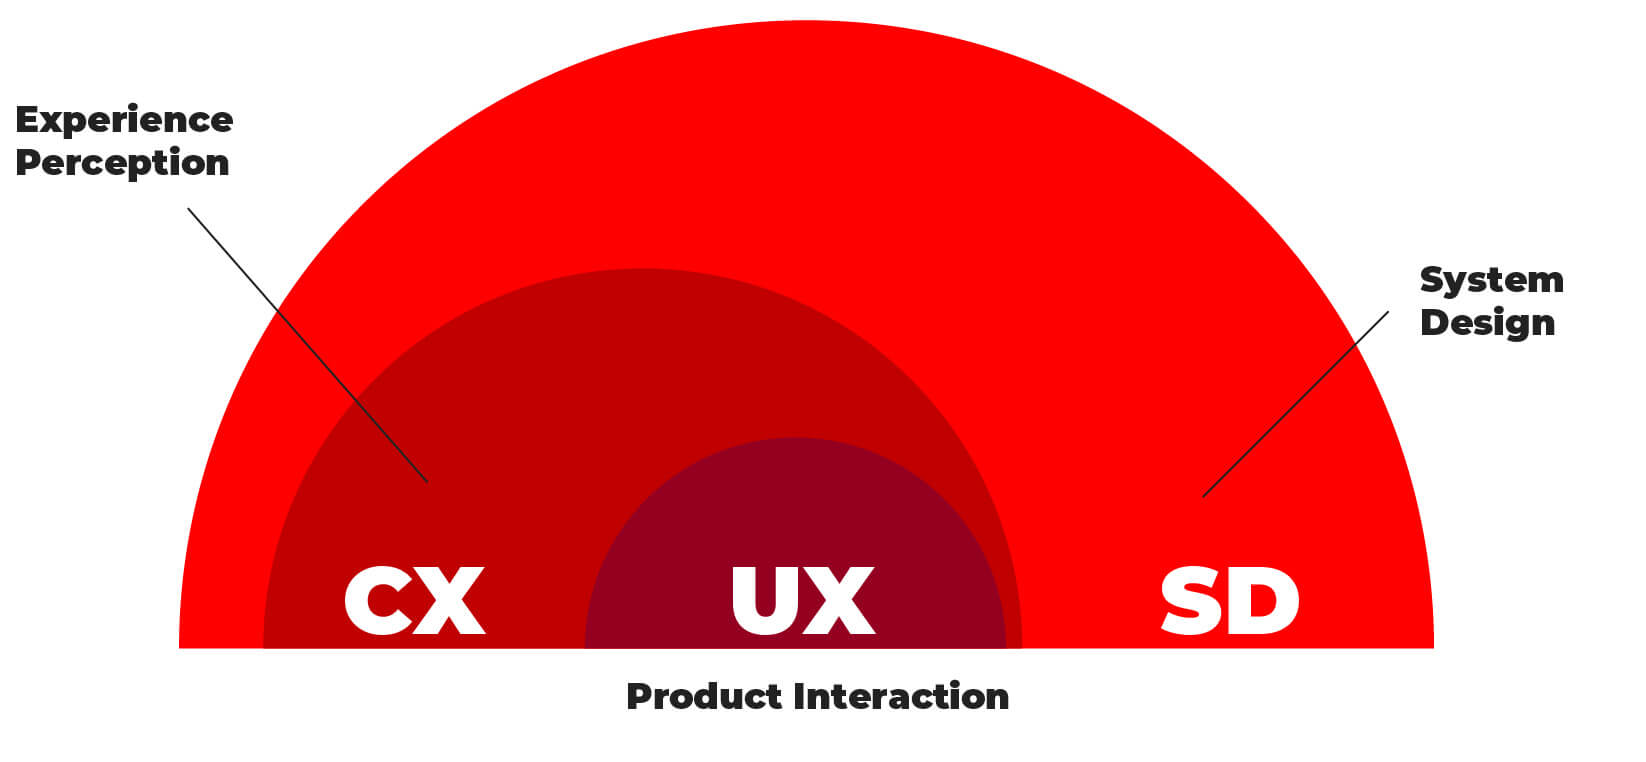 Service Design Thinking vs User Experience